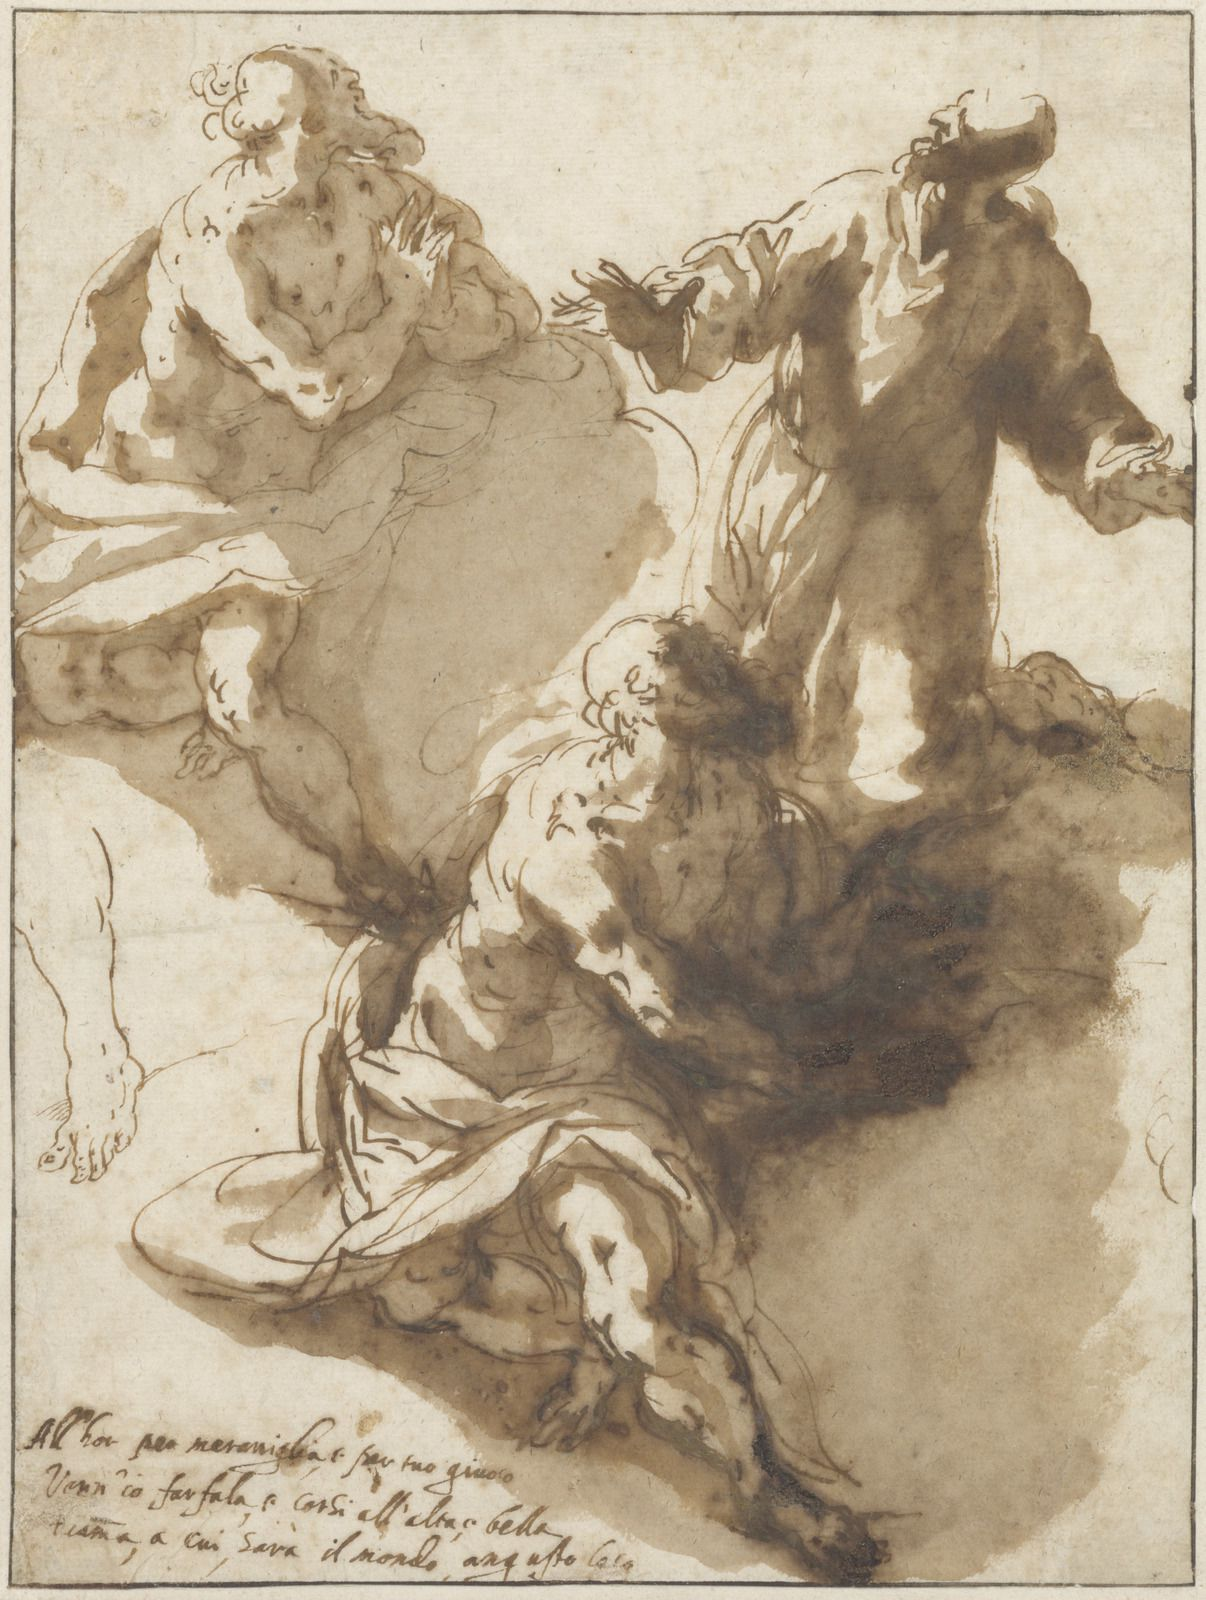 Alessandro Maganza (Vicenza 1556 – ap. 1632 Vicenza), Trois études de saints dans les nuages. Plume et encre brune, lavis brun. – 270 × 203 mm Fondation Custodia, Collection Frits Lugt, Paris, inv. 1973-T.44